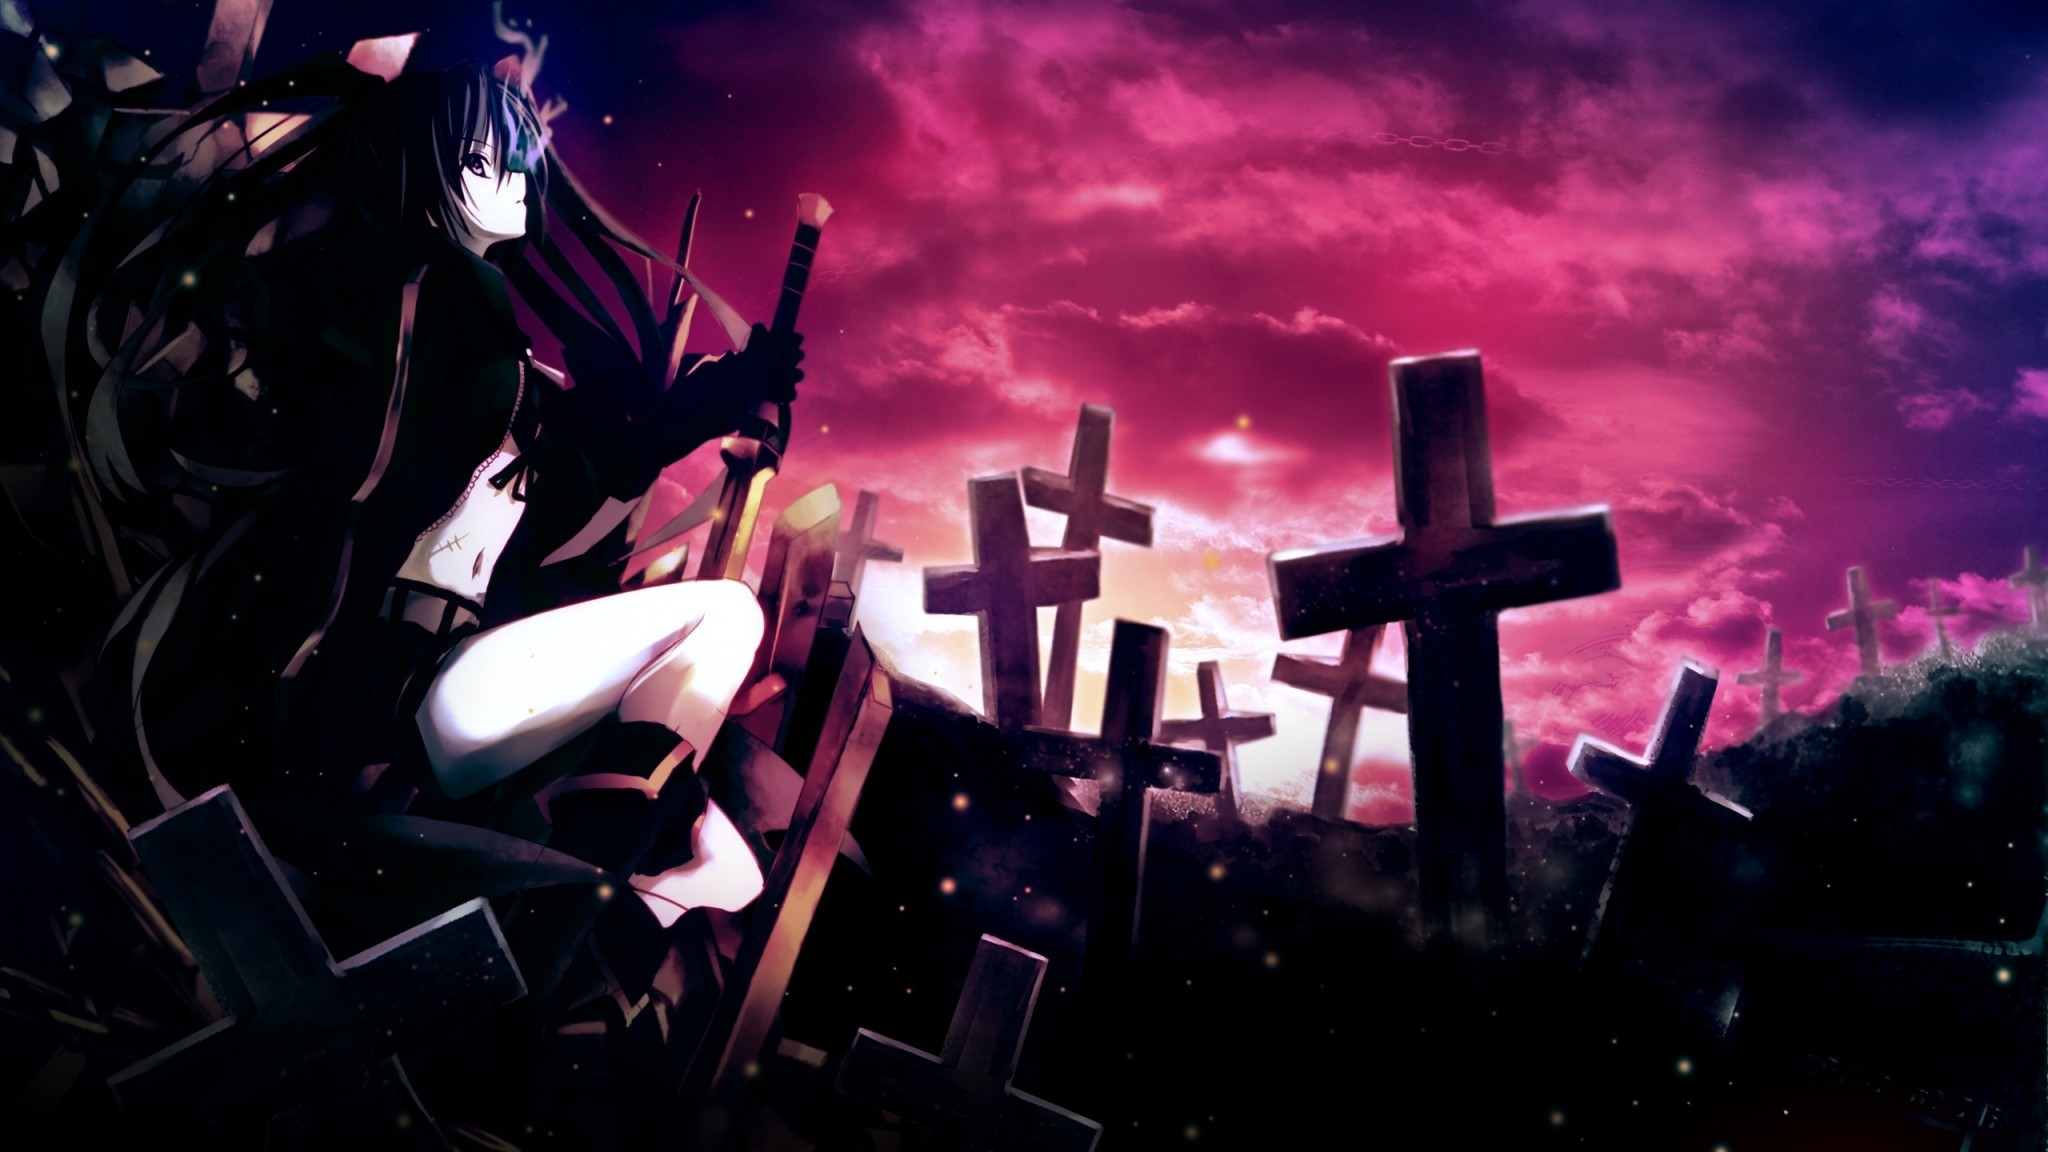 2048x1152 Preview wallpaper anime, girl, thoughtful, sword, cemetery, darkness